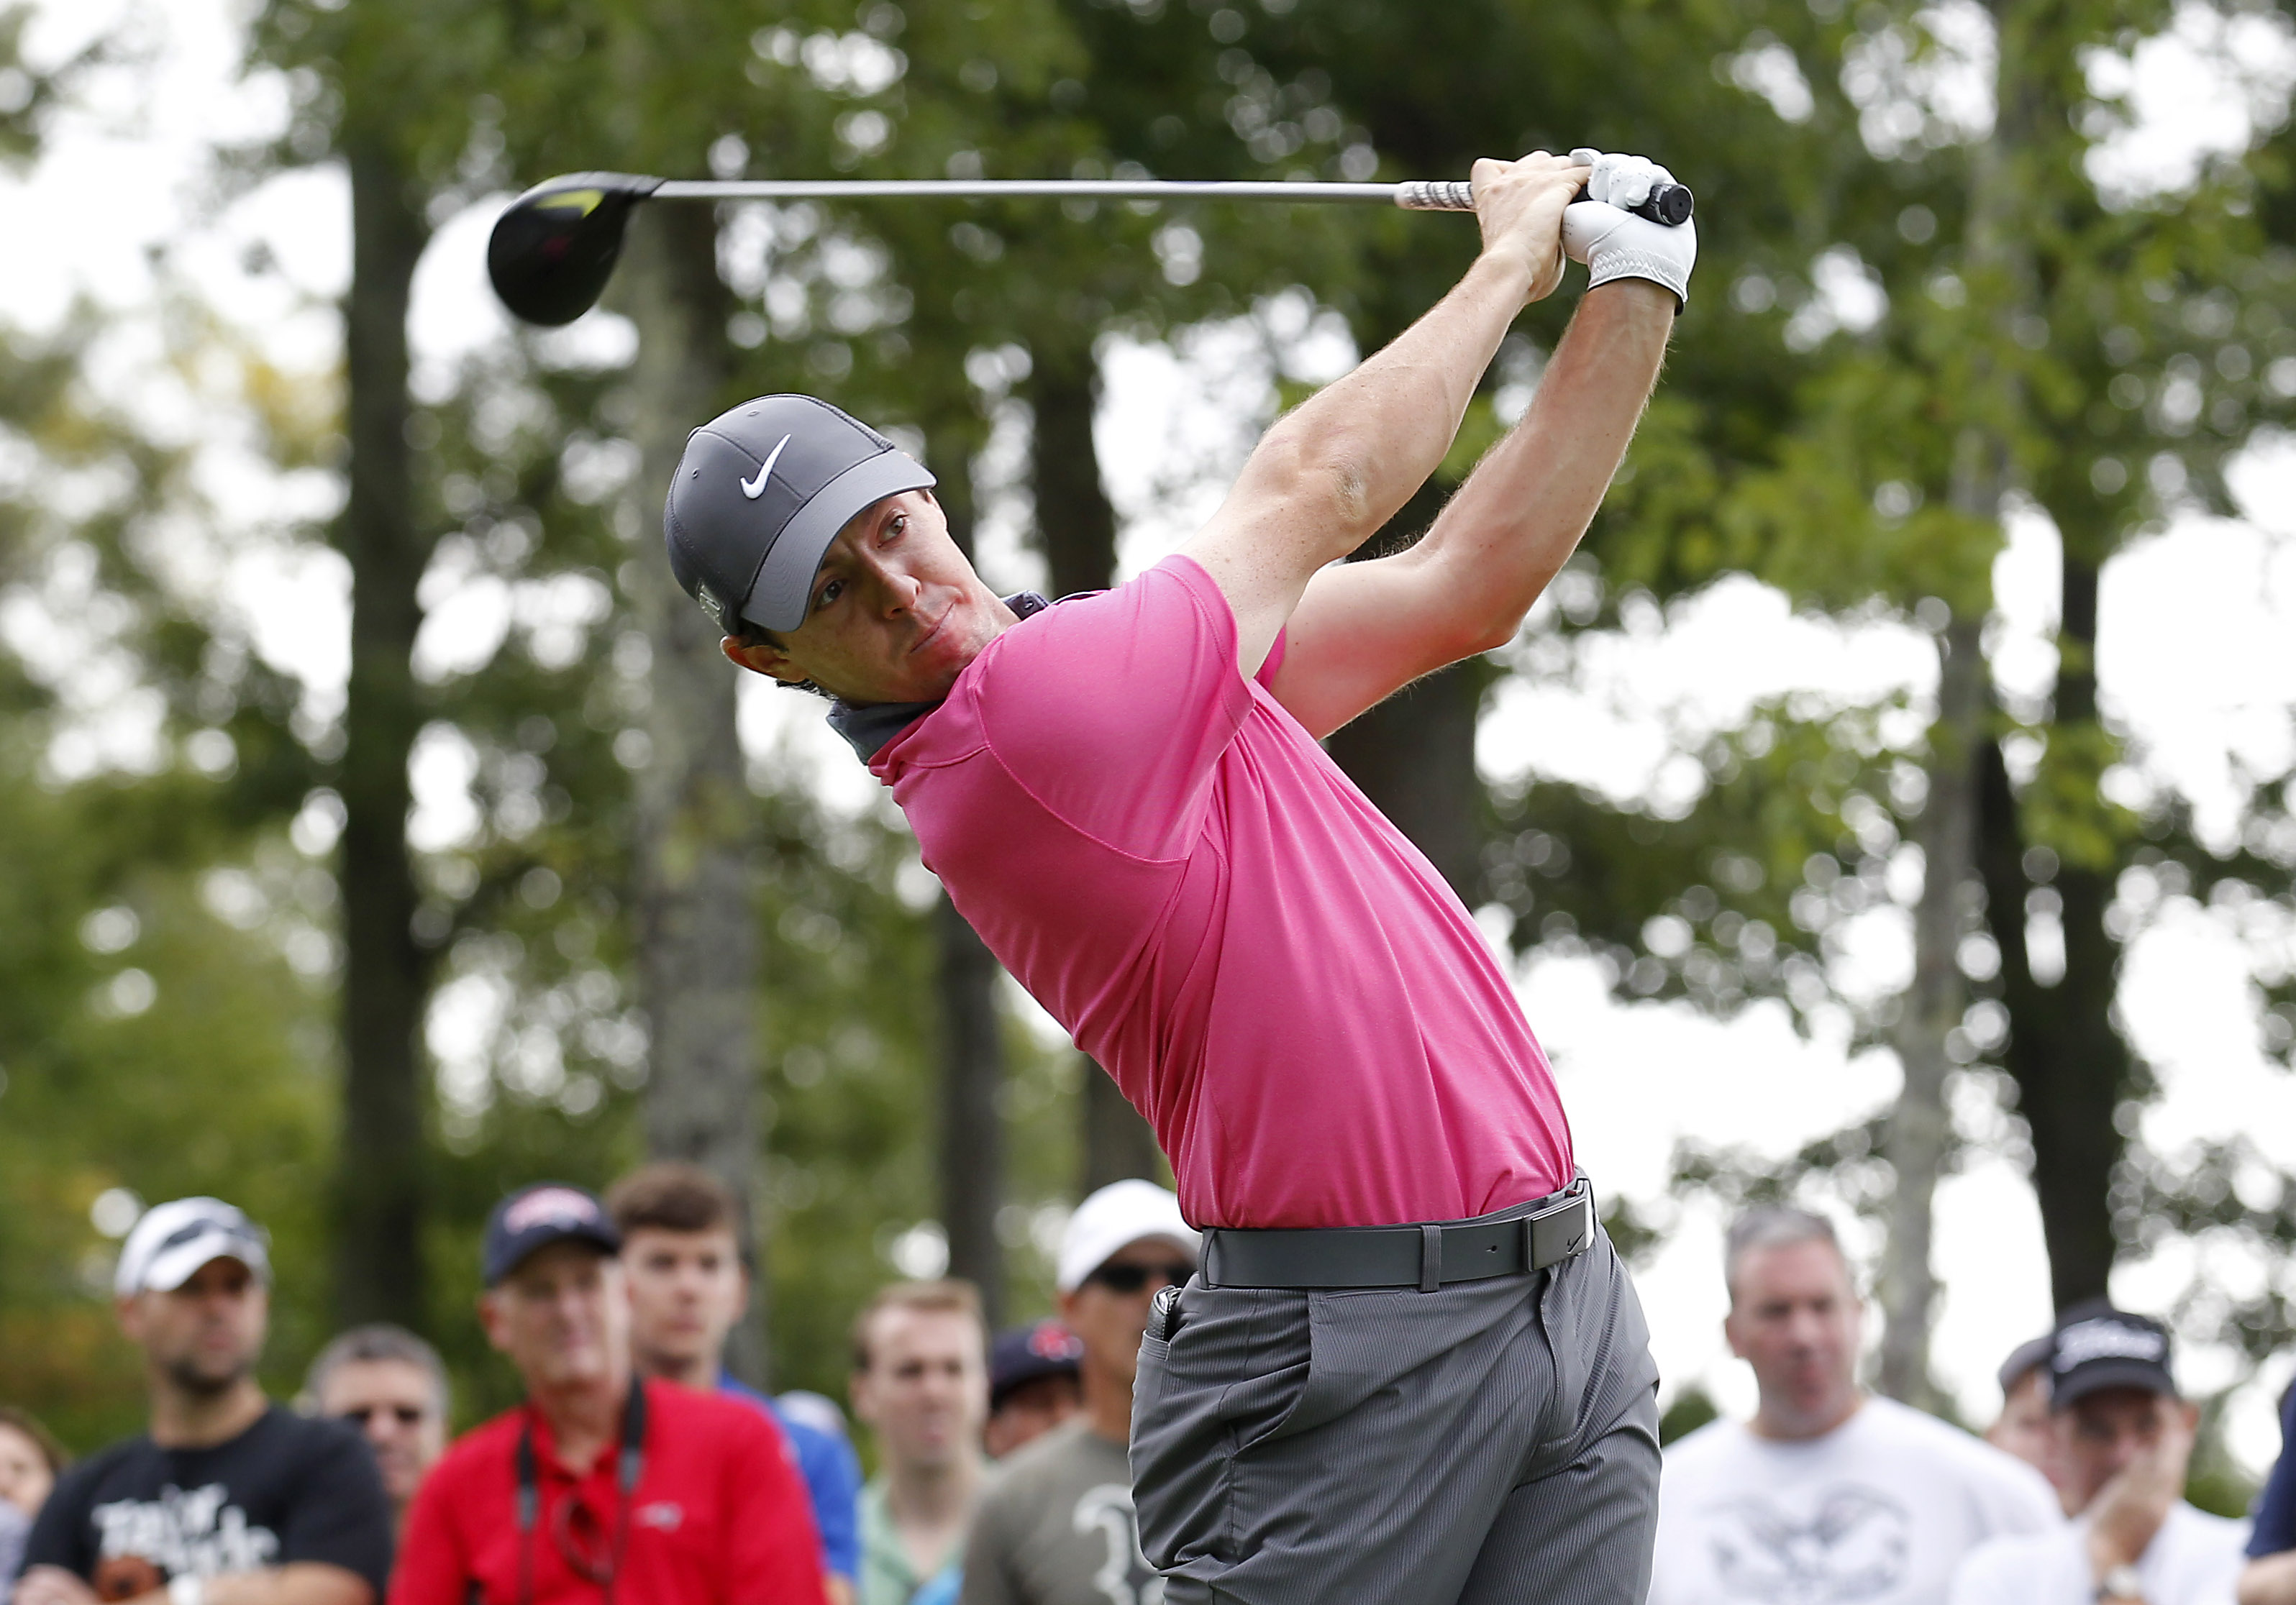 Rory McIlroy, from Northern Ireland, hits his tee shot on the 12th hole during the first round of the Deutsche Bank Championship golf tournament in Norton, Mass., Friday, Sept. 4, 2015. (AP Photo/Stew Milne)